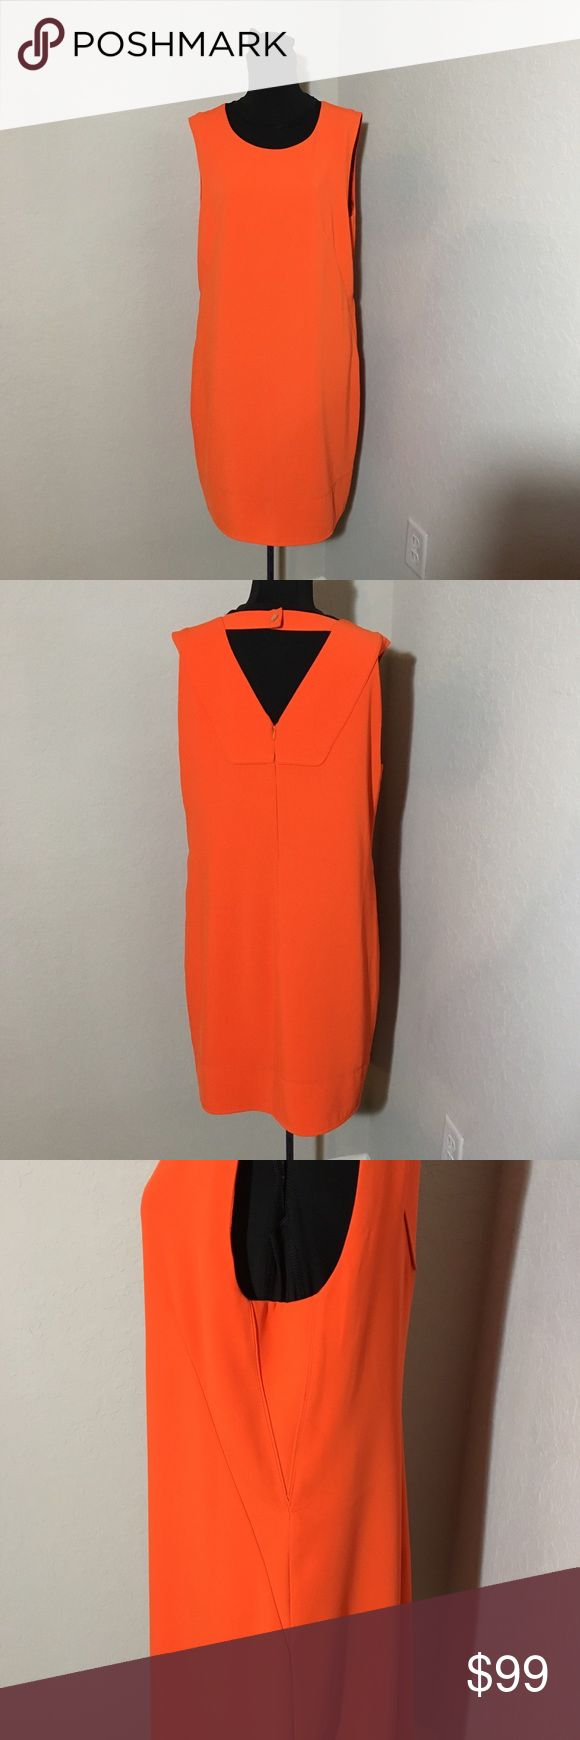 "Laundry by Shelli Segal Sheath Dress w/ Cutout 12 Laundry by Shelli Segal Sheath Dress w/ Cutout Amazing out of stock on every website!! Orange Laundry by Shelli Segal Sheath Dress with Cutout back!!! Perfect condition! Size 12. Hidden zipper in the back and gold button closure. 20"" armpit to armpit (laying flat), 36"" shoulder to hem, 19"" waist (laying flat). Laundry by Shelli Segal Dresses"